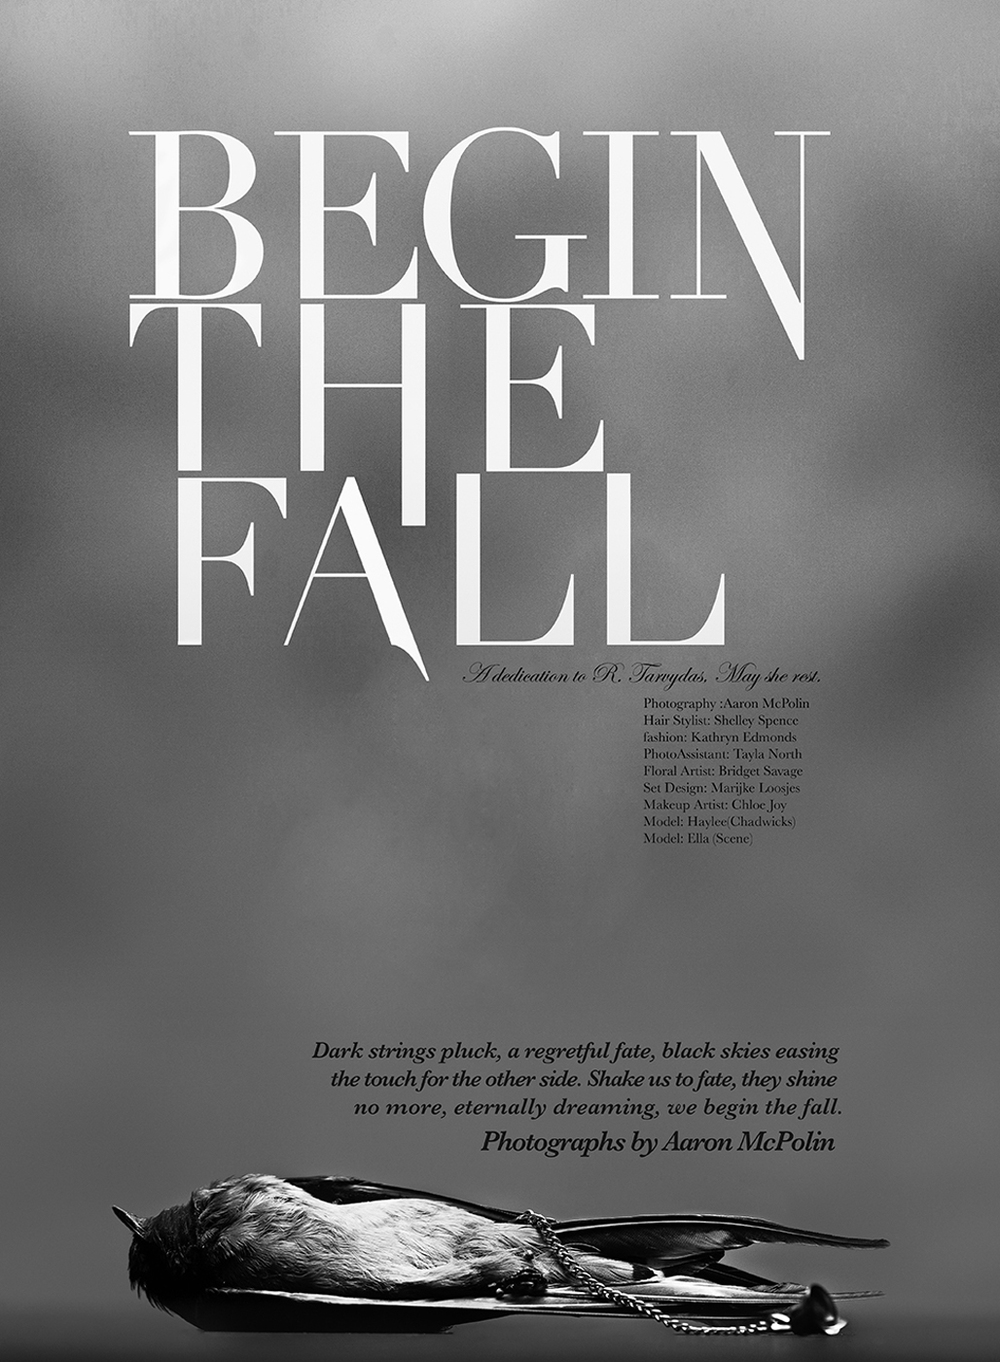 Begin-The-Fall-By-Aaron-McPolin-2.jpg